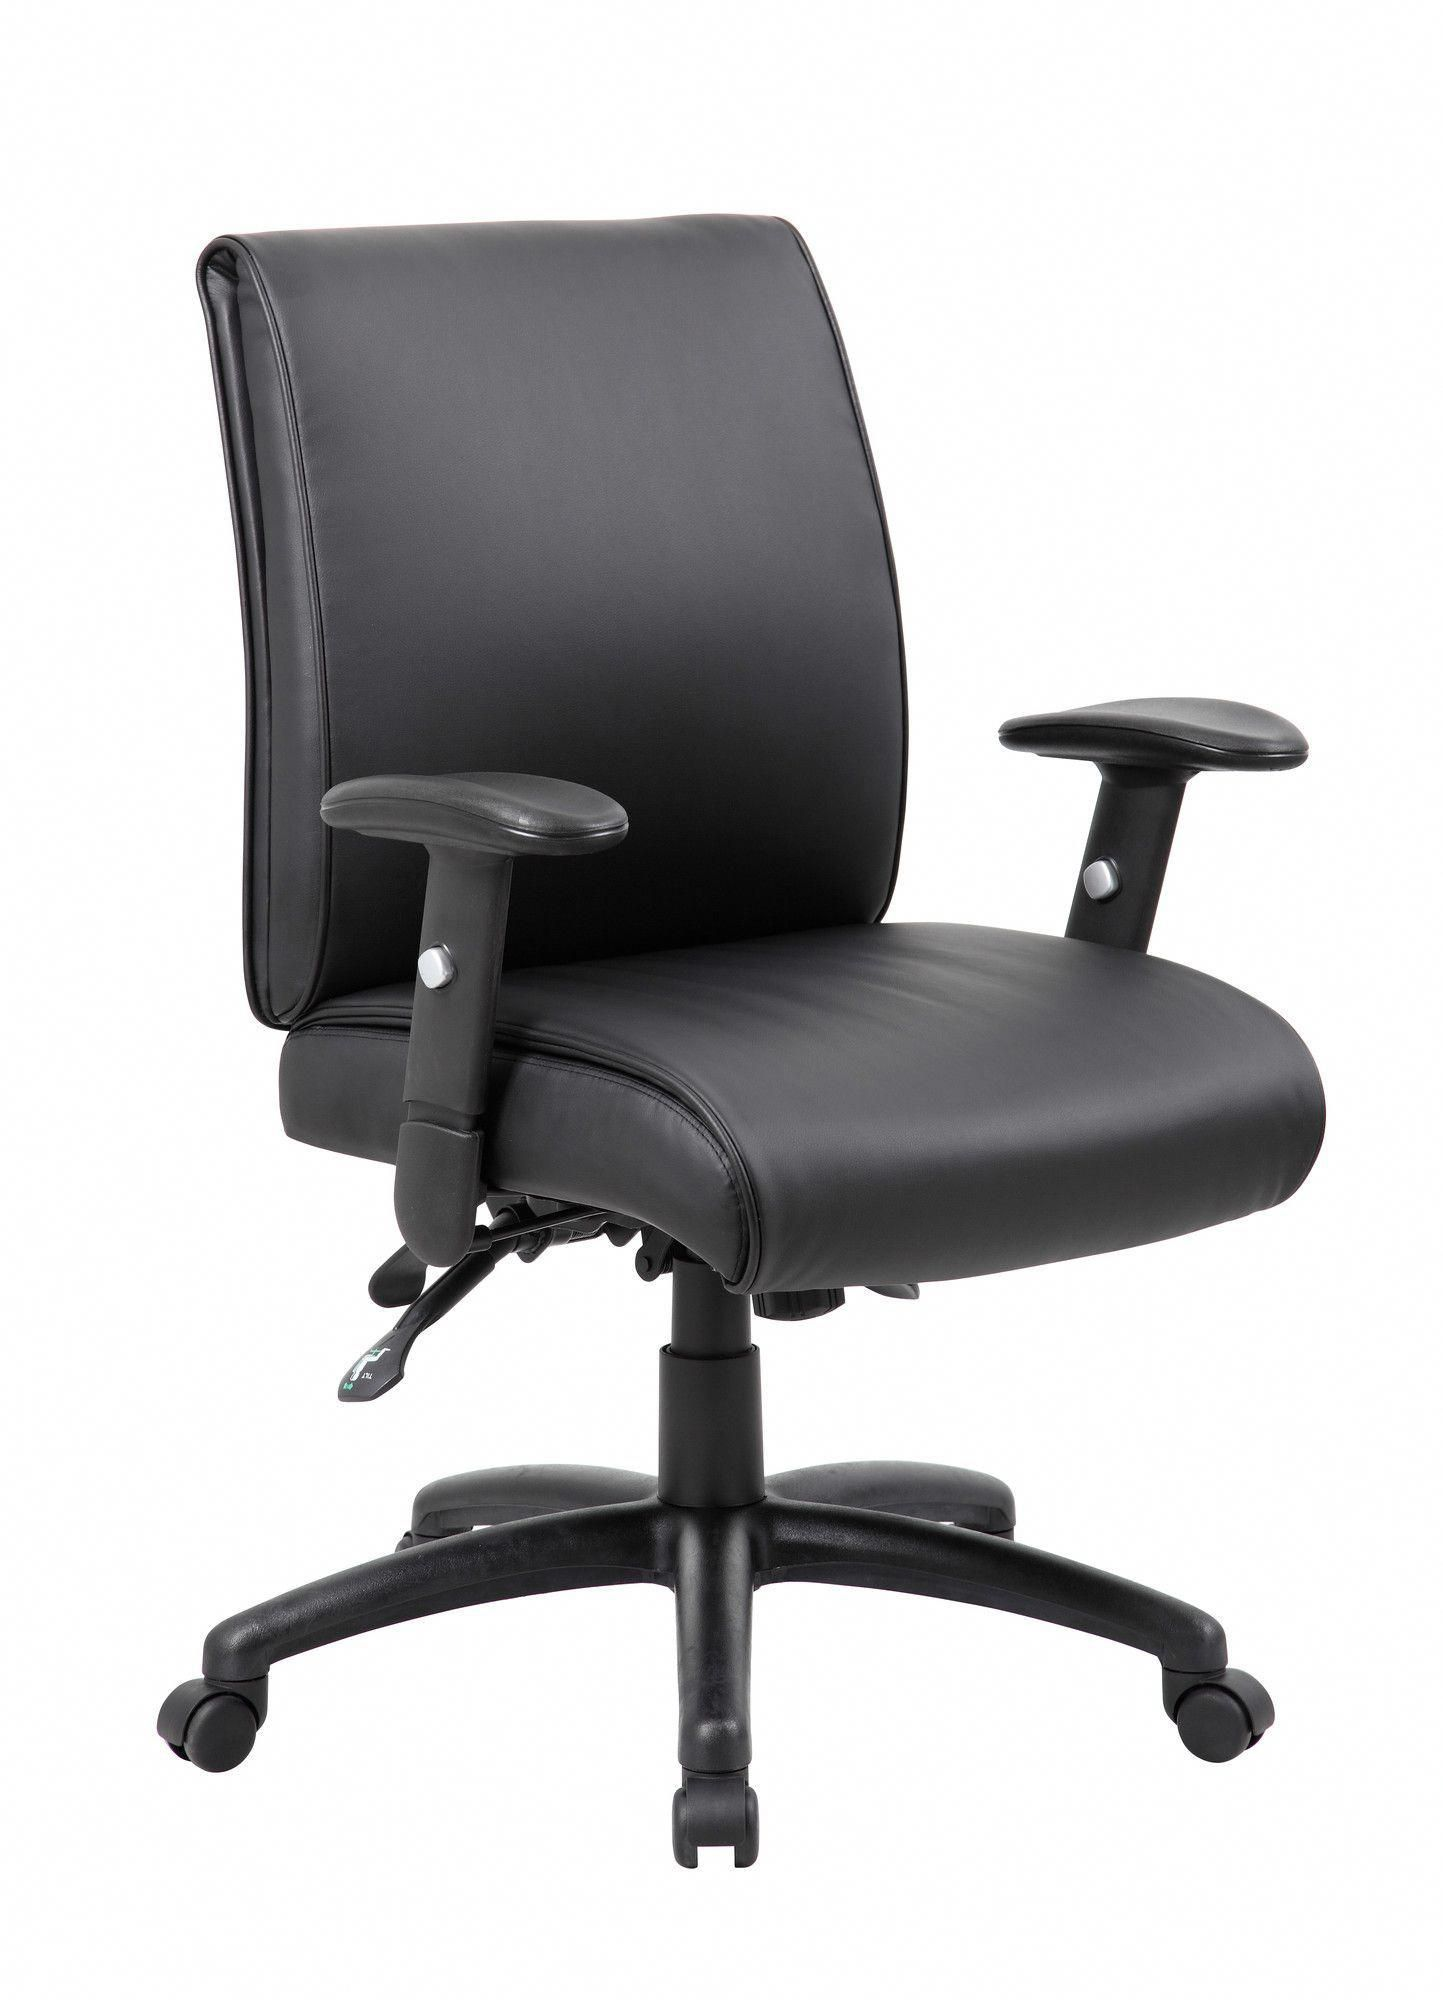 Cool Mid Back Conference Chair With Arms Deskchairtarget Desk Home Interior And Landscaping Spoatsignezvosmurscom